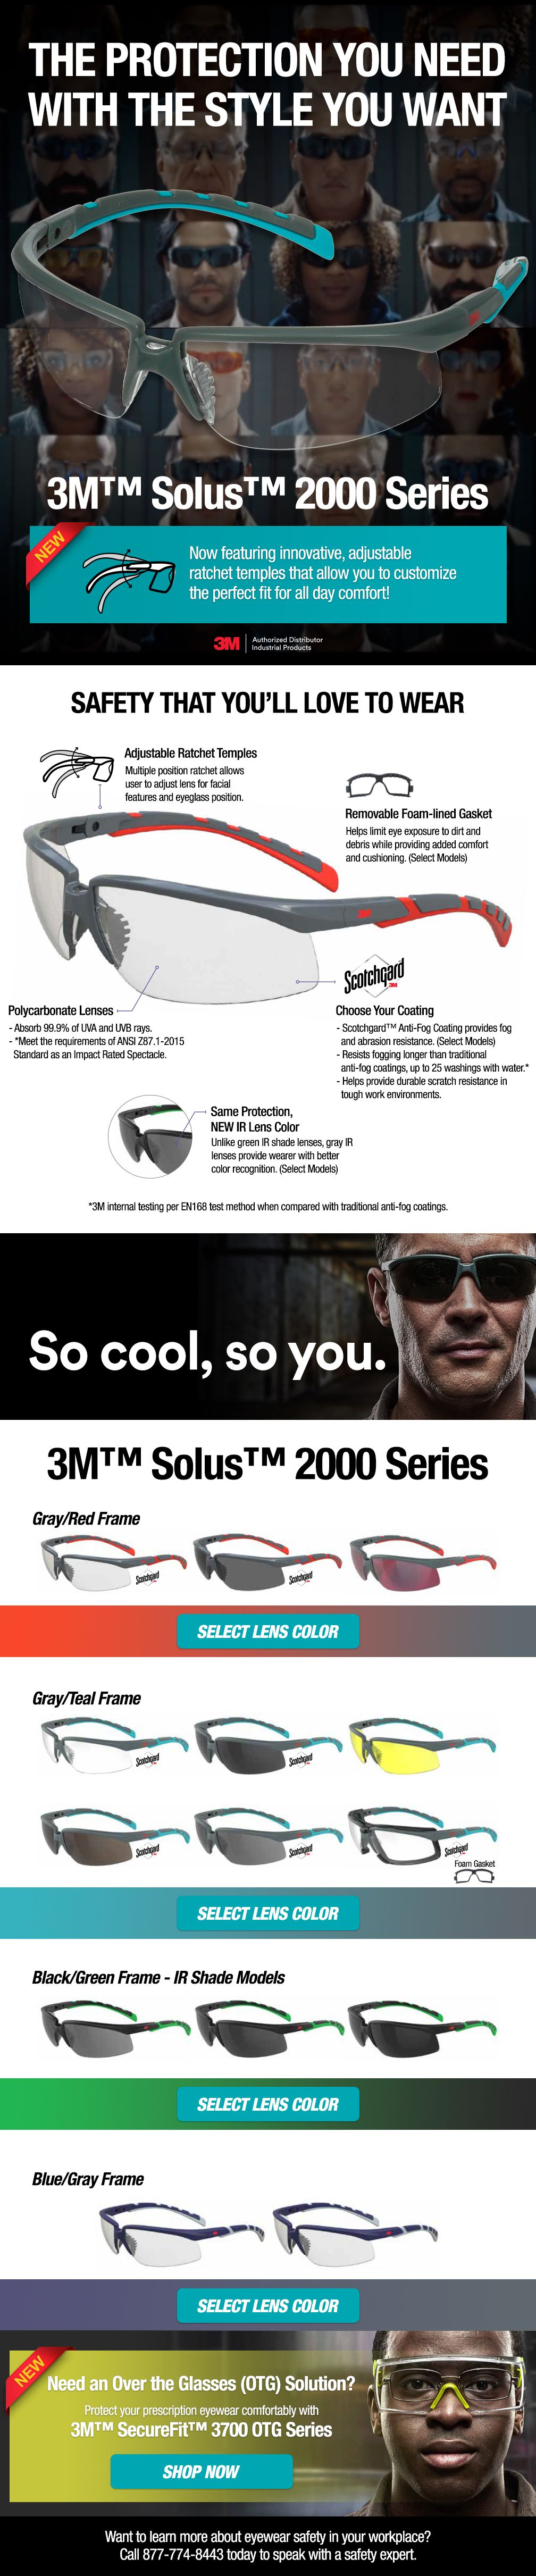 3m solus 2000 series safety glasses series personal